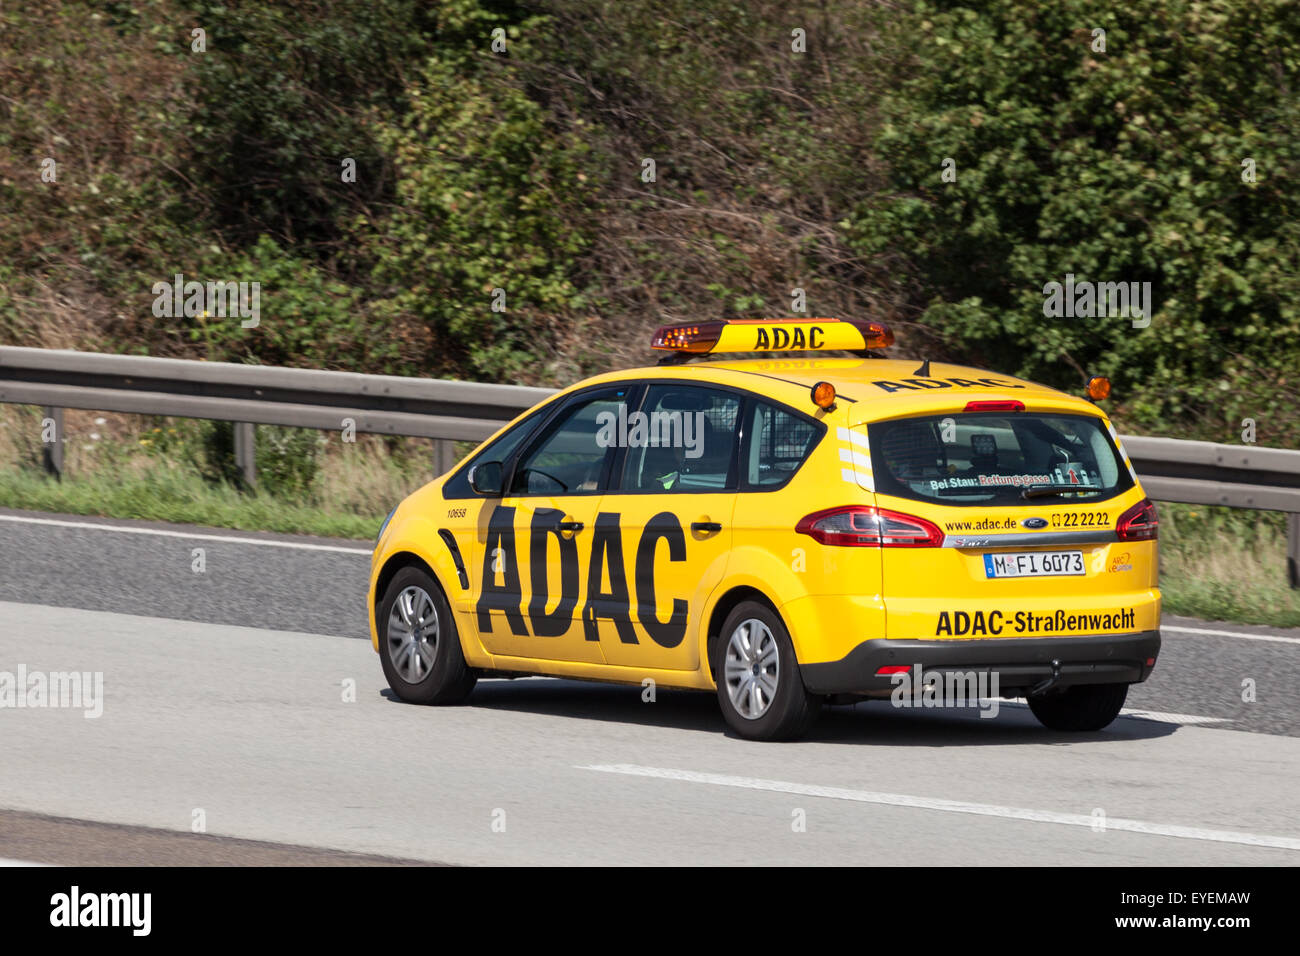 Yellow ADAC Ford S-Max on the highway A5 near. The ADAC (Allgemeiner Deutscher Automobil-Club) is an automobile - Stock Image